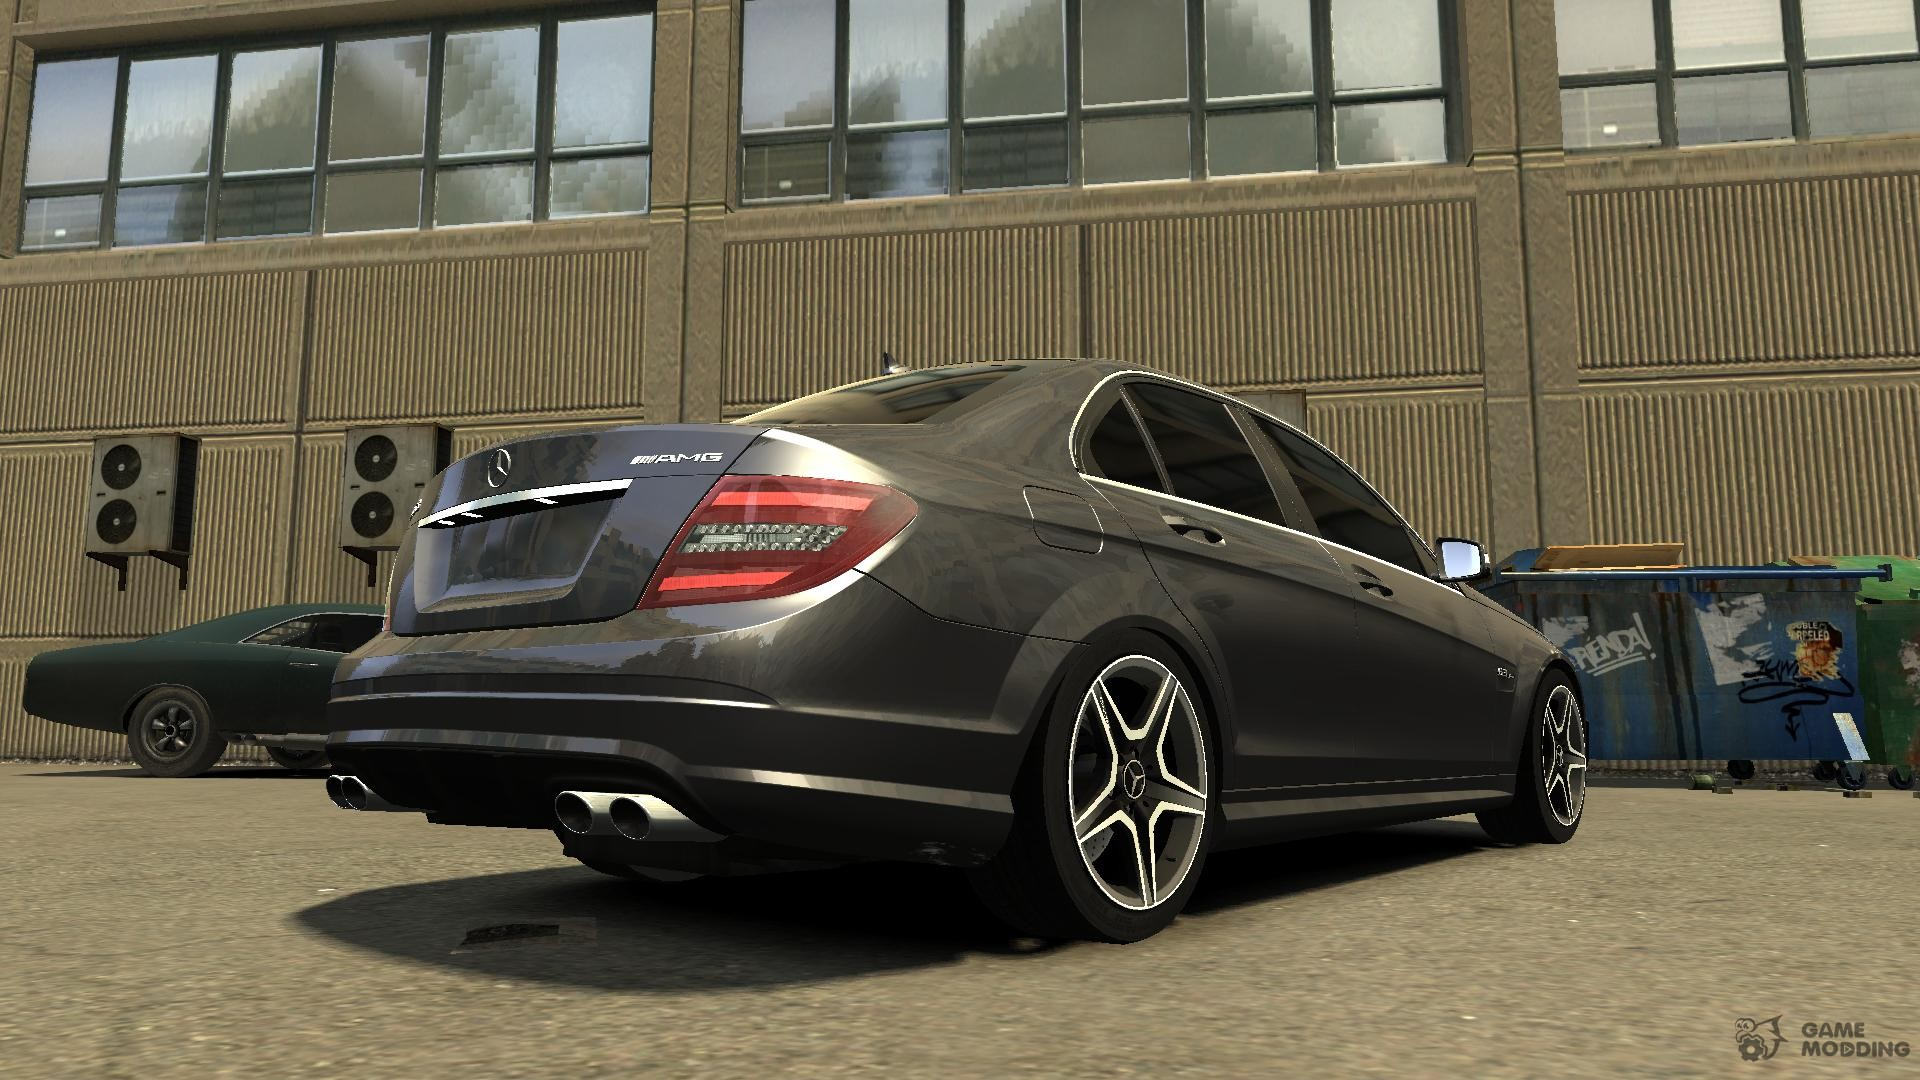 Mercedes benz c63 amg 2010 for gta 4 for Mercedes benz gta